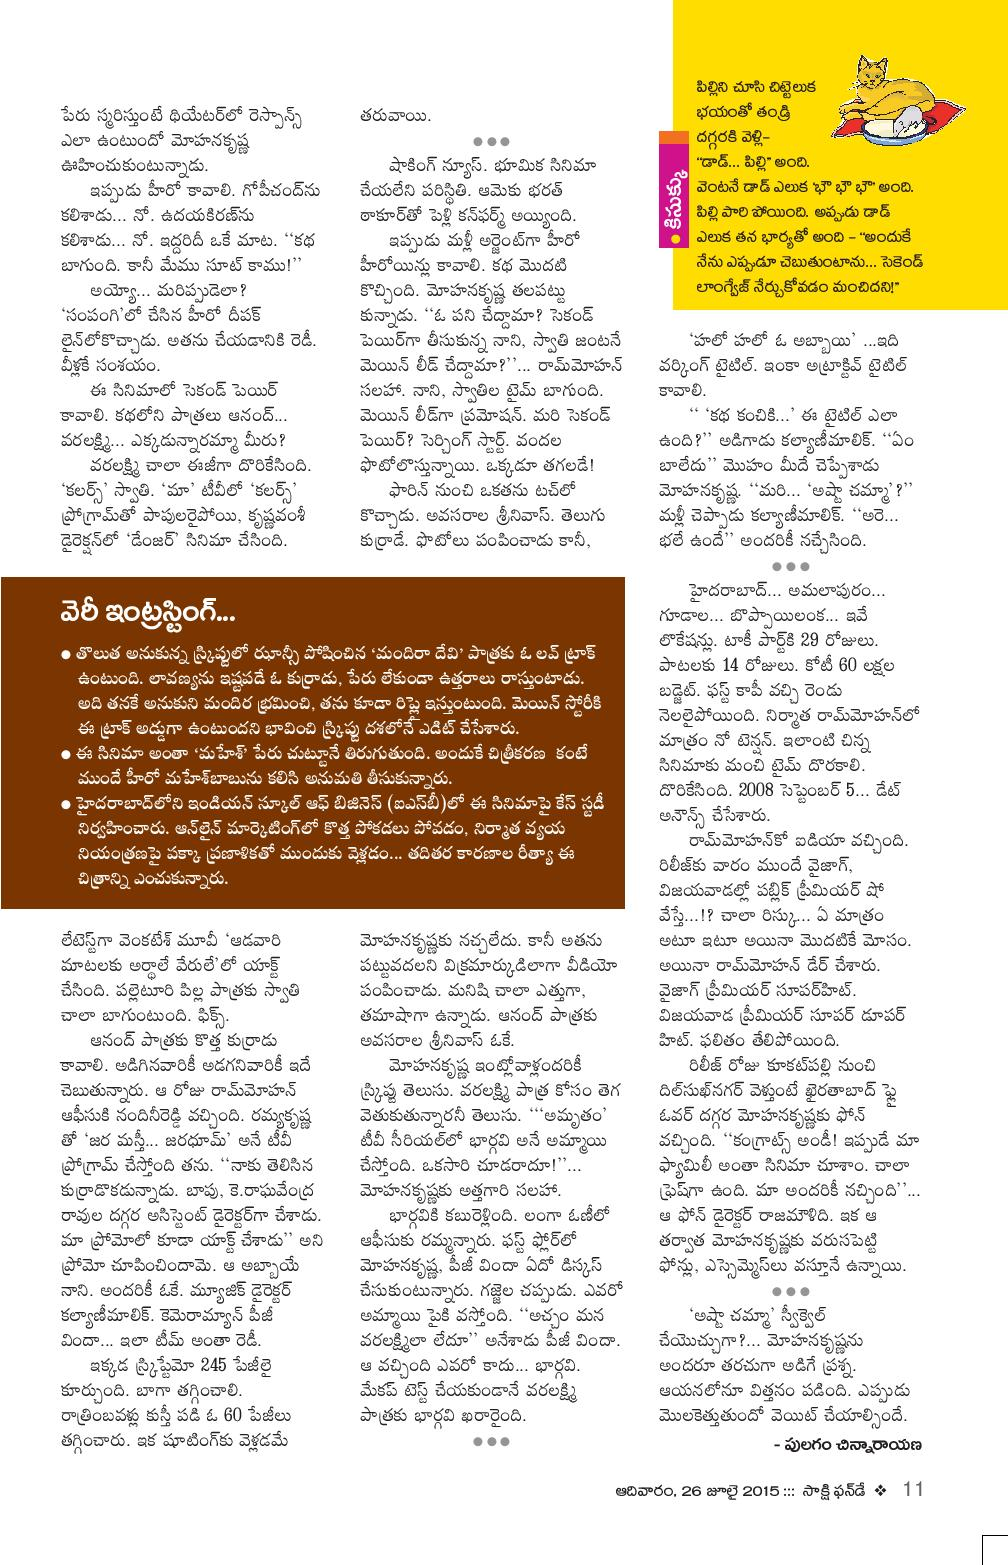 Cinema Venuka Story_Asta Chamma_Funday (26-7-2015)-page-002